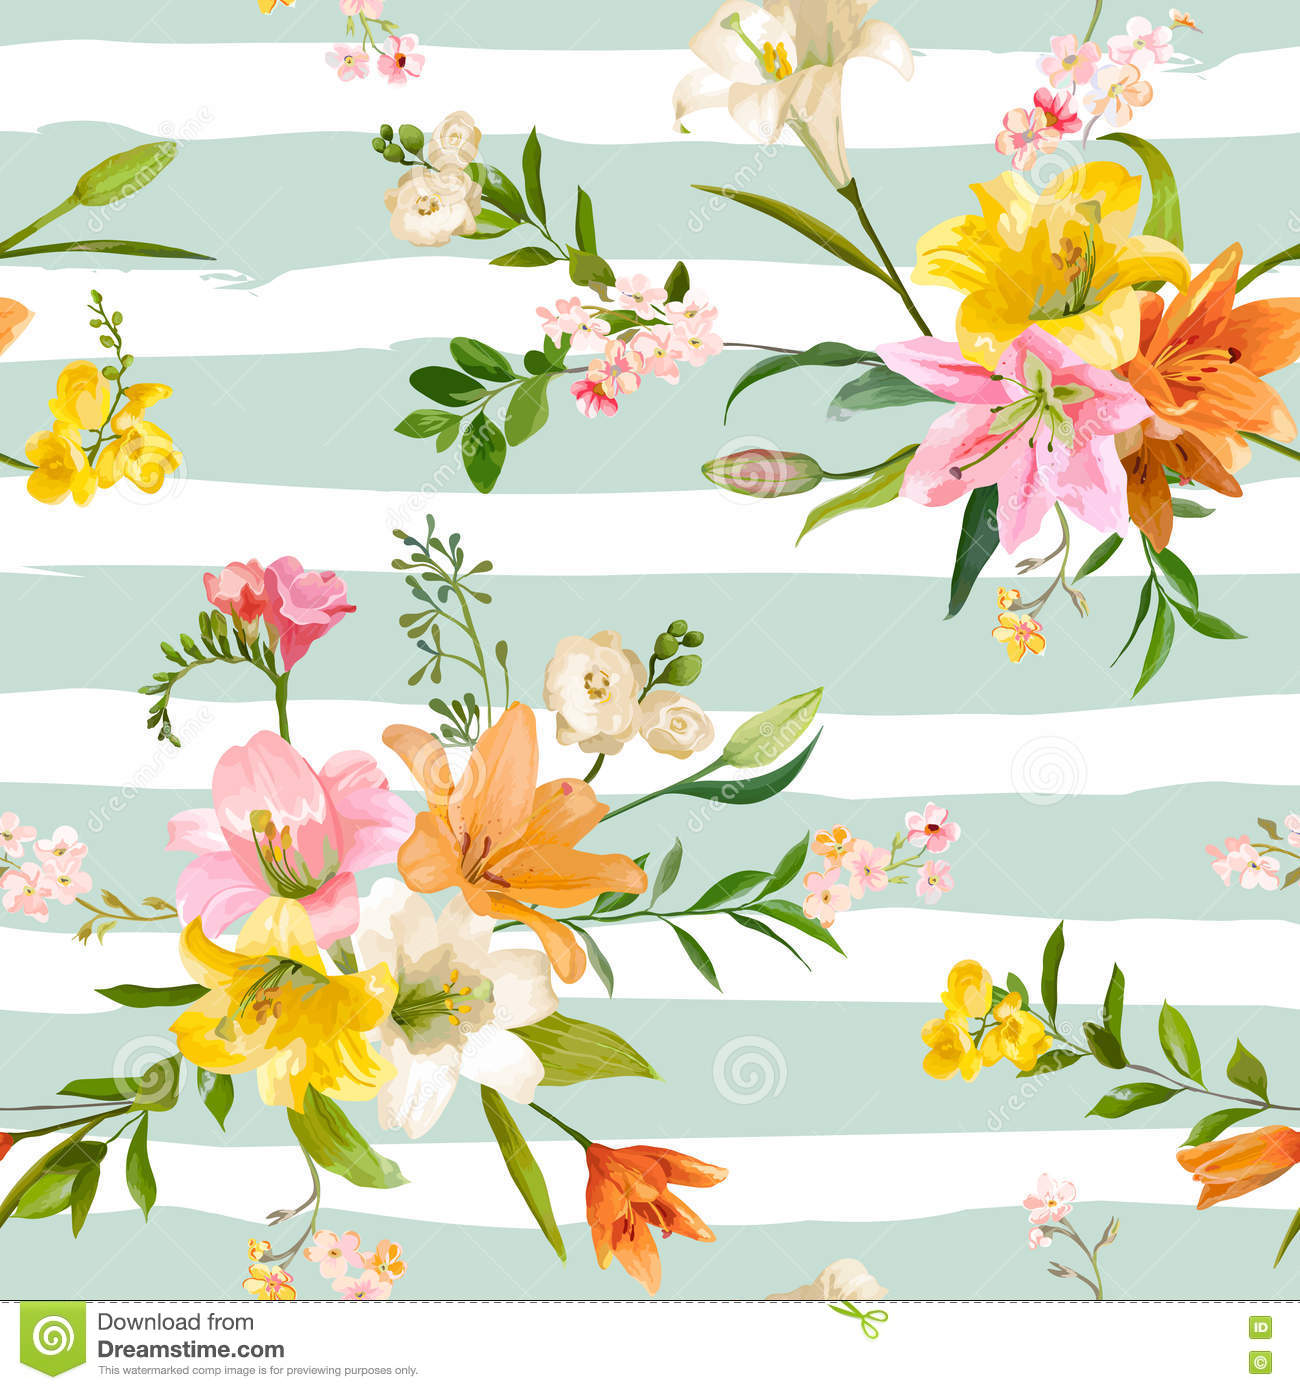 Background with spring flowers - vector EPS clipart